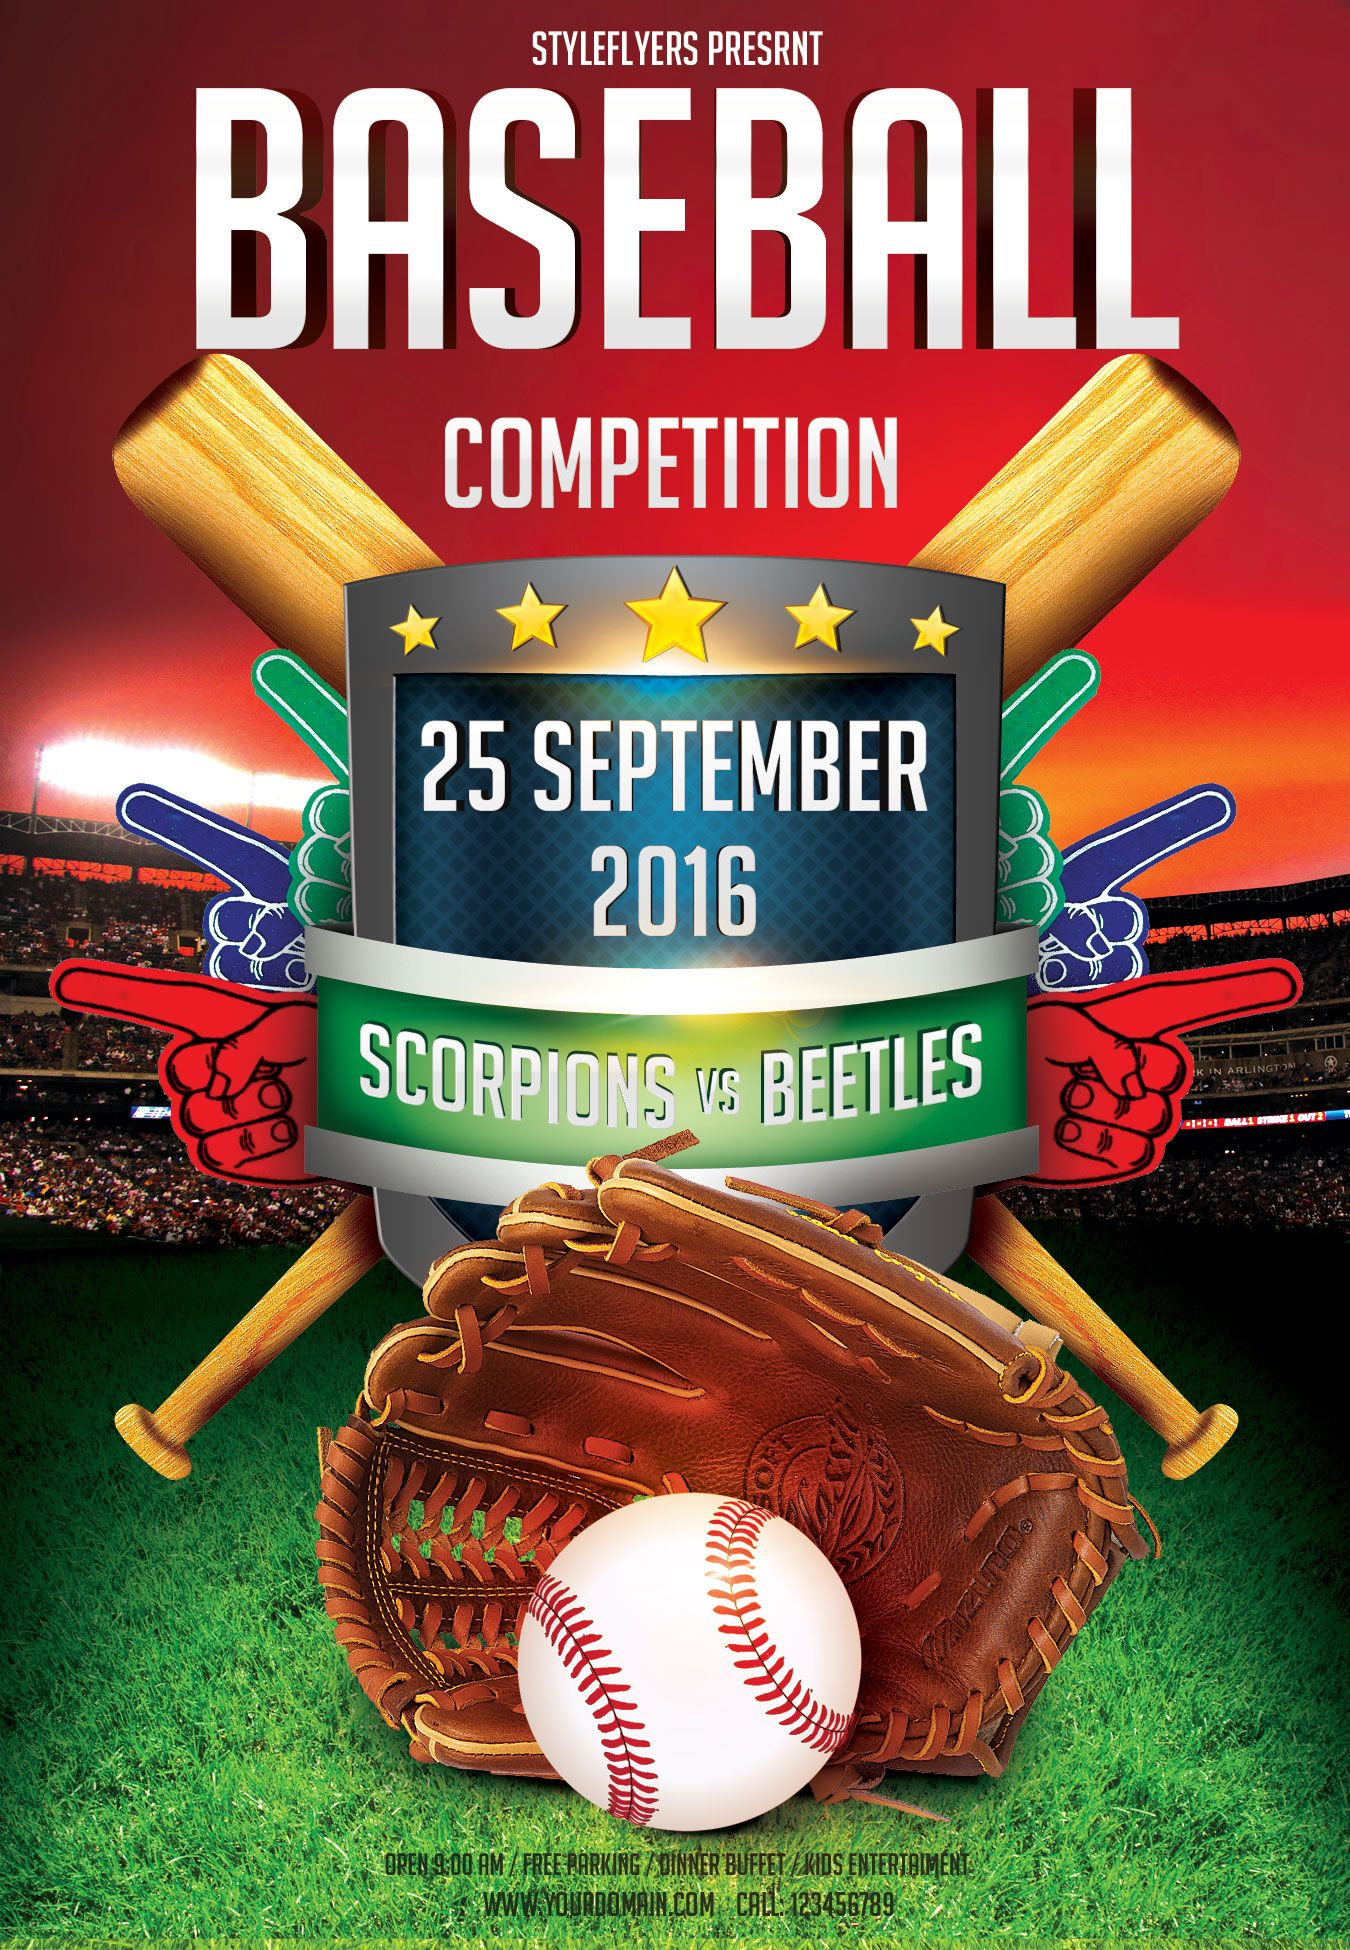 free baseball psd flyer template is waiting for you download it